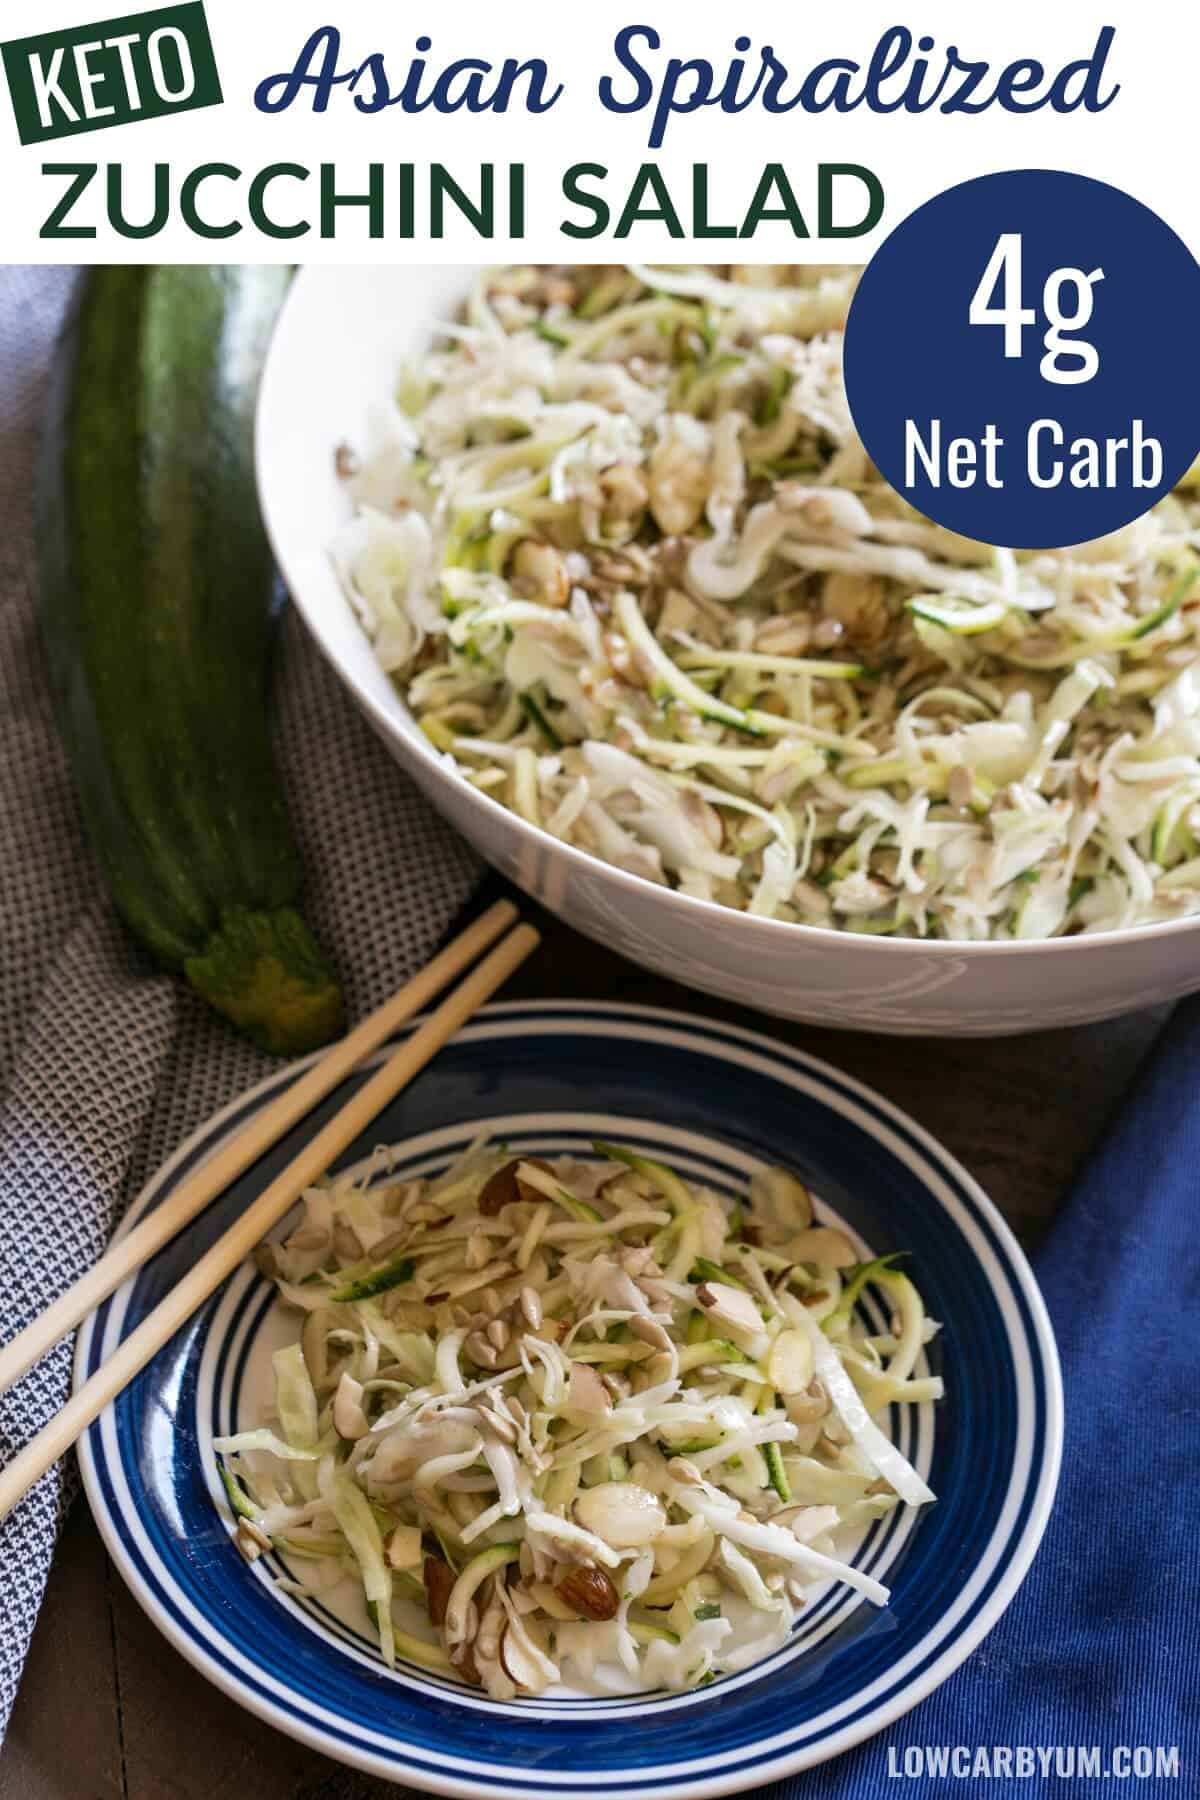 keto Asian spiralized zucchini salad